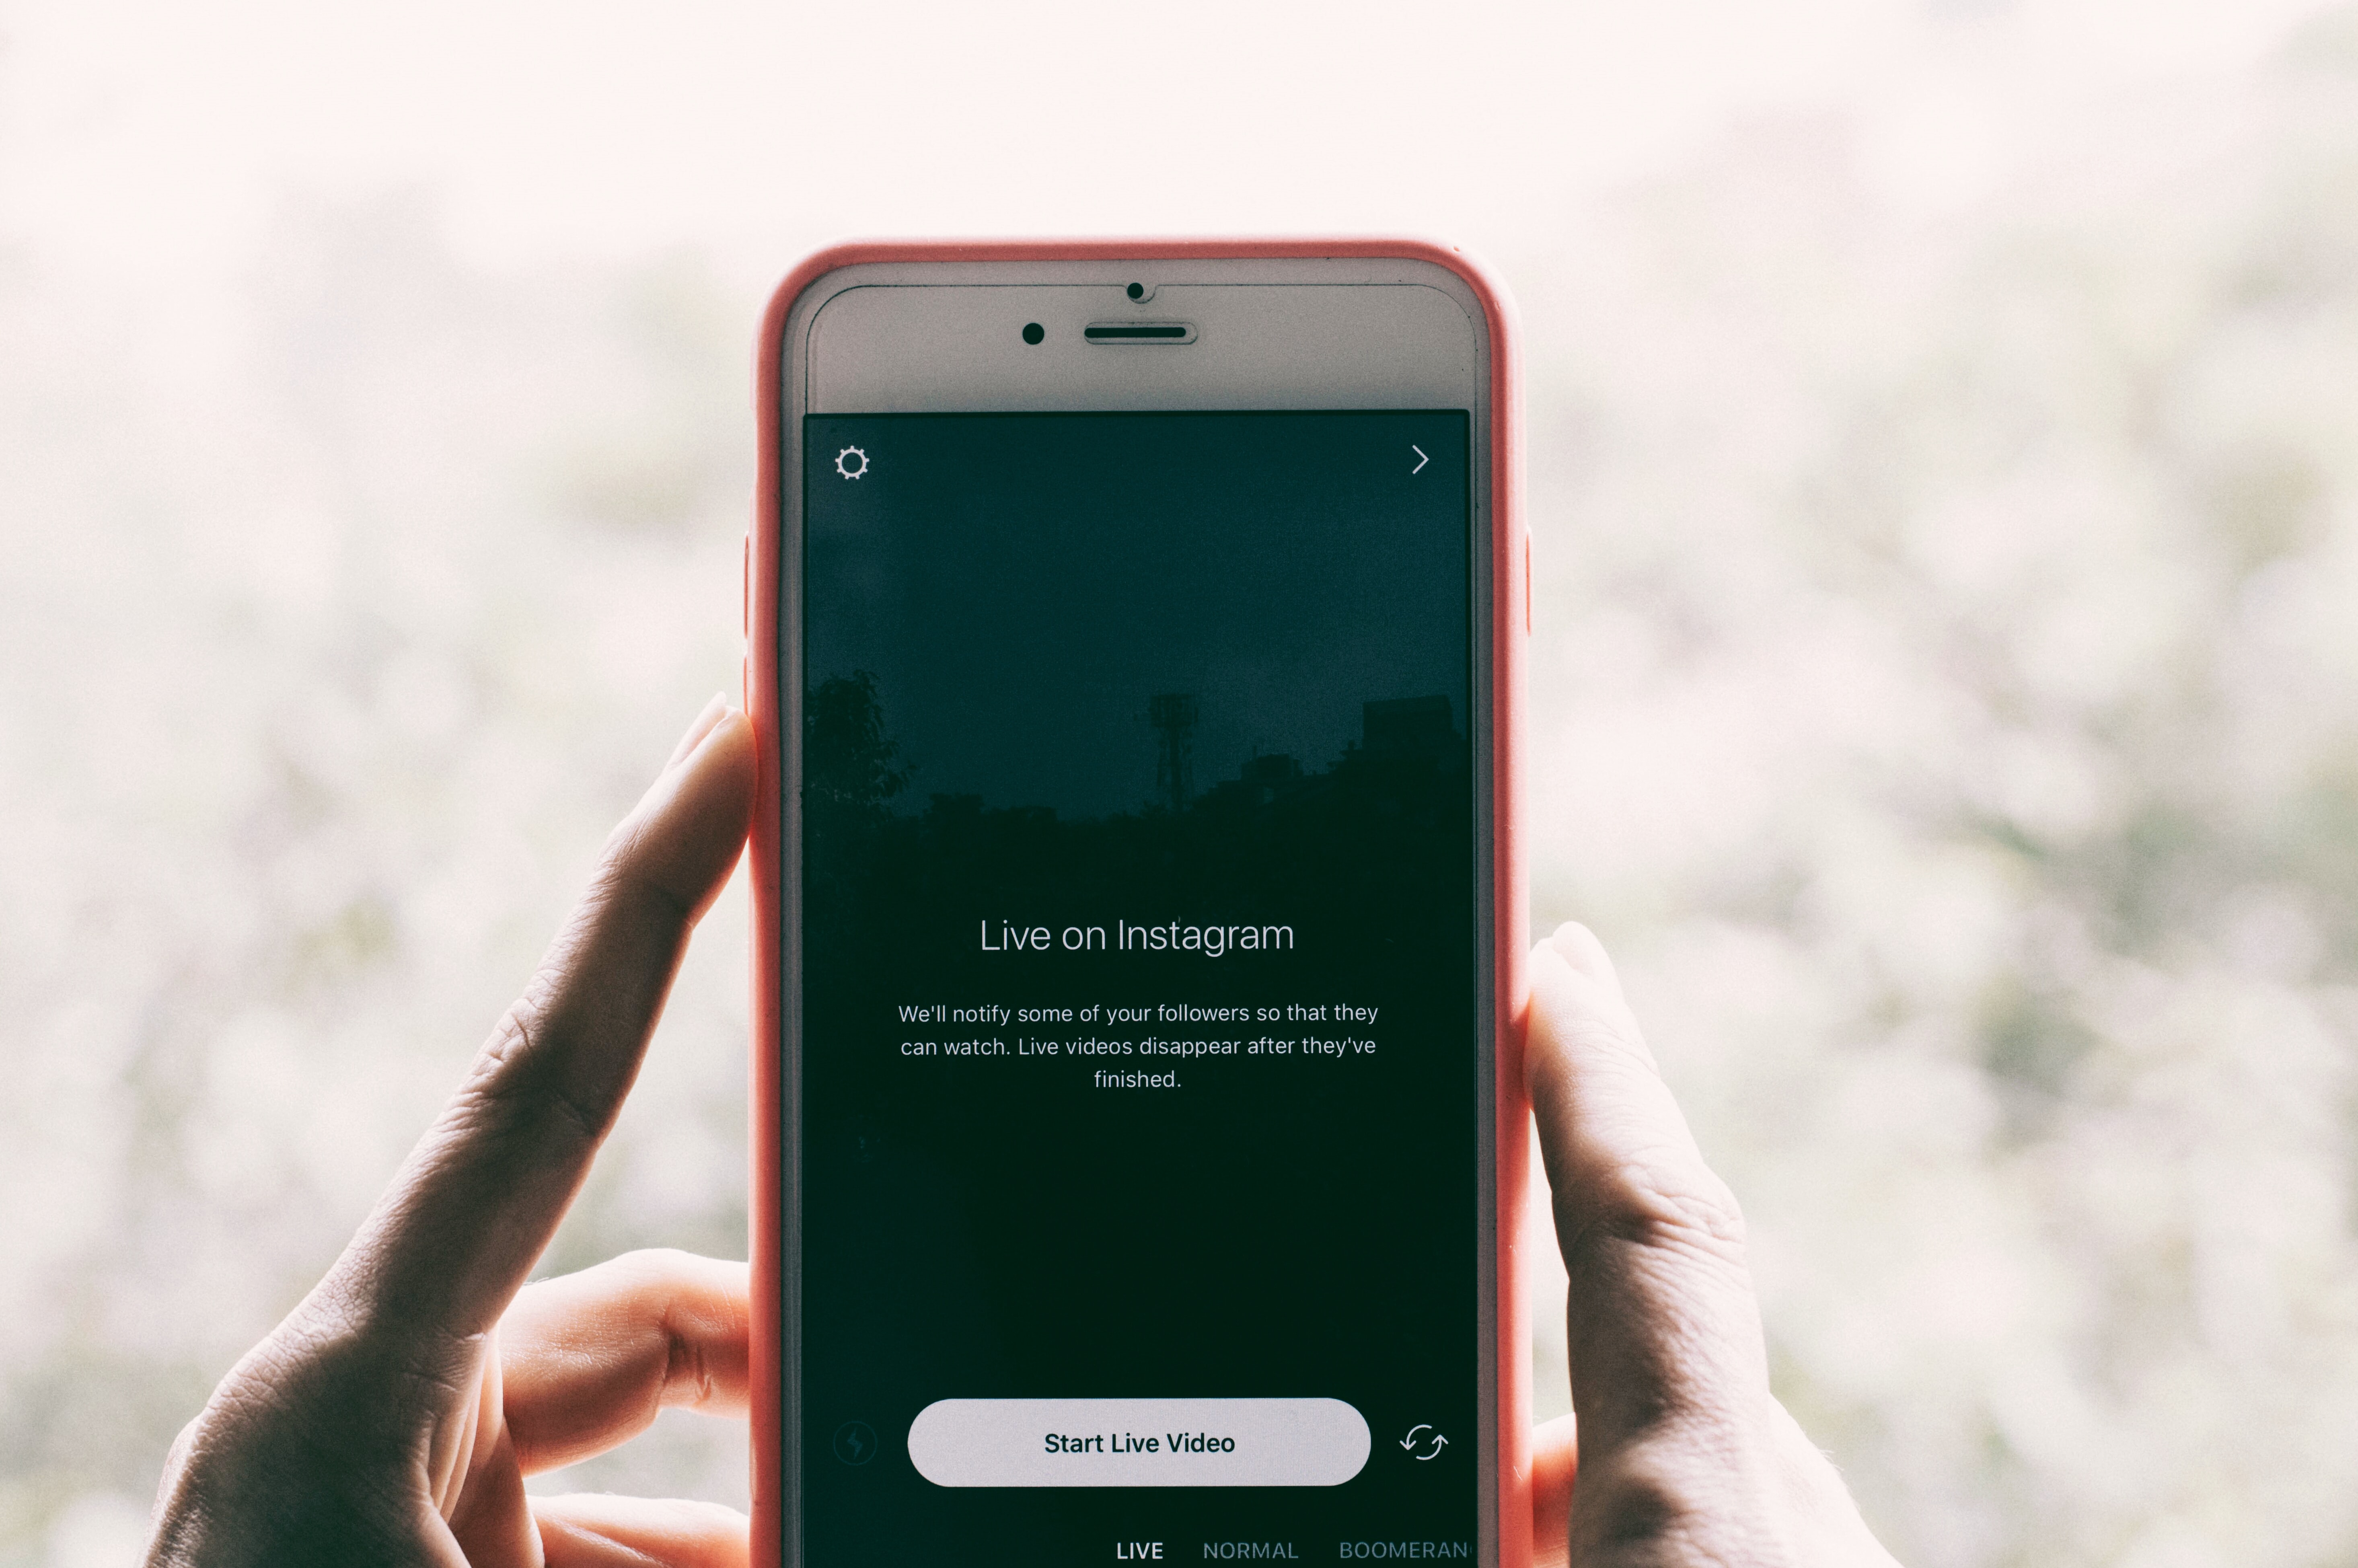 A person holding an iPhone with Instagram live videos open